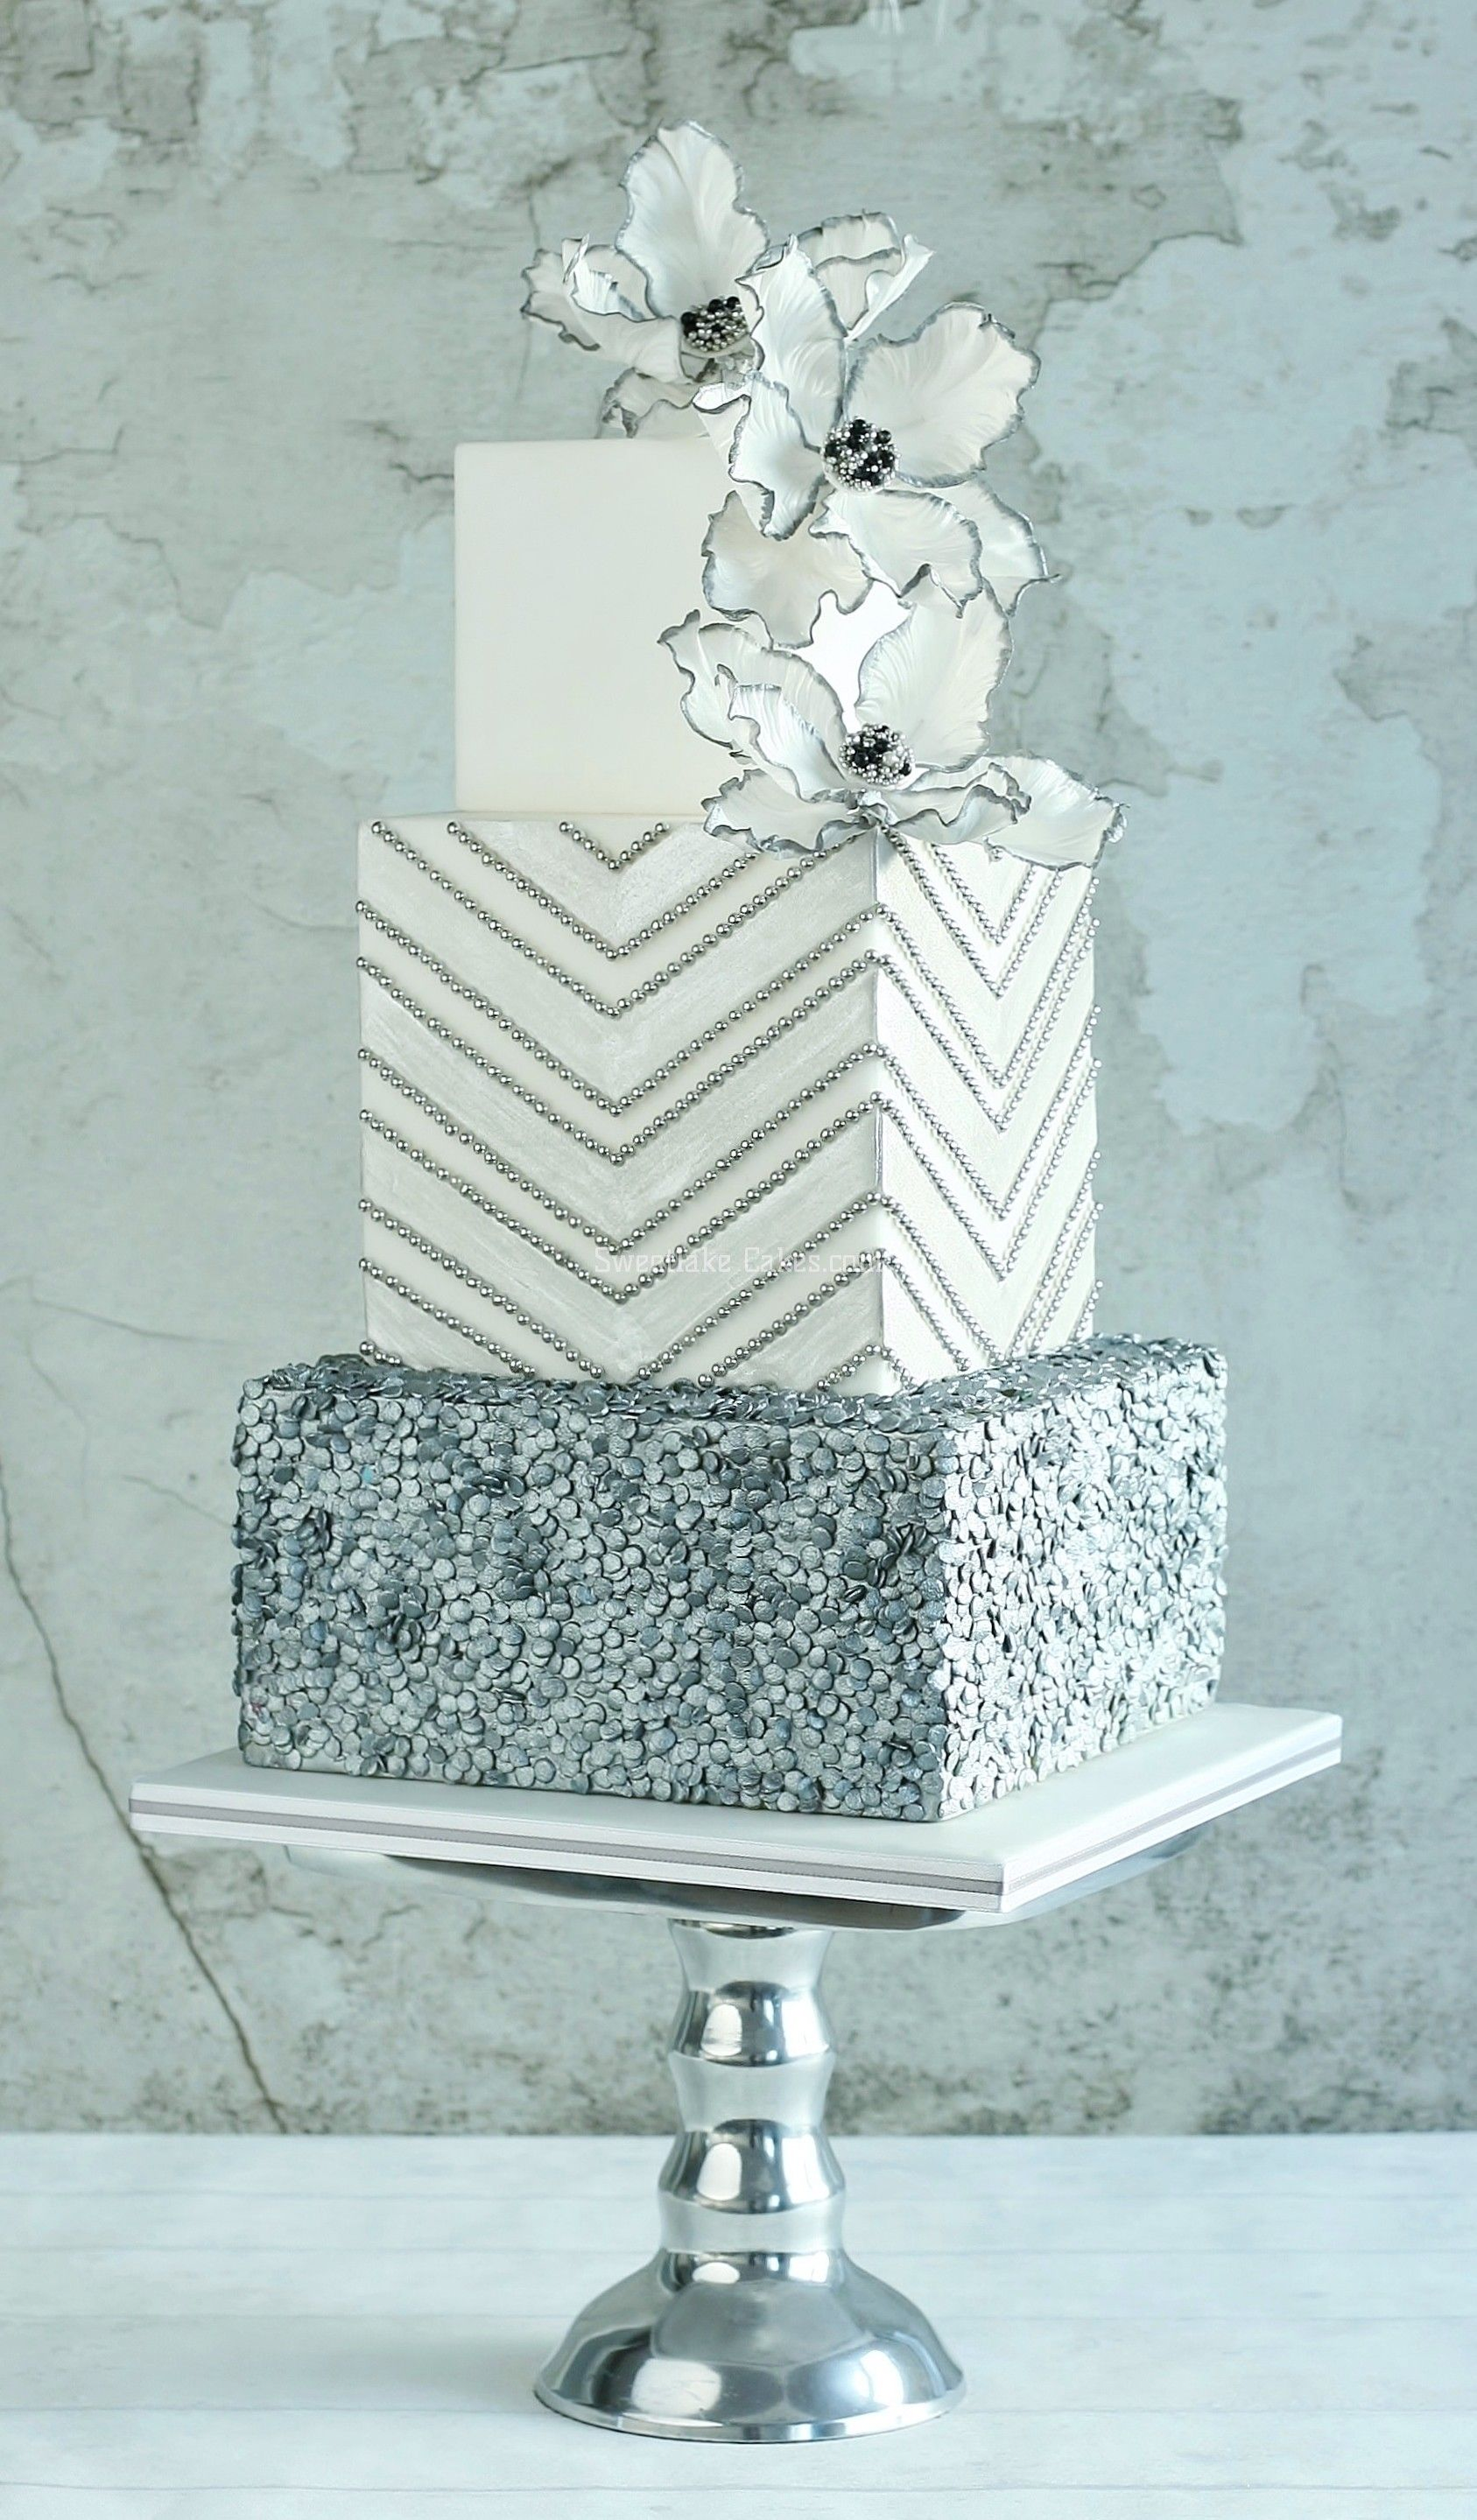 Sequins and a little bling - Cake with sequins and parrot tulips \